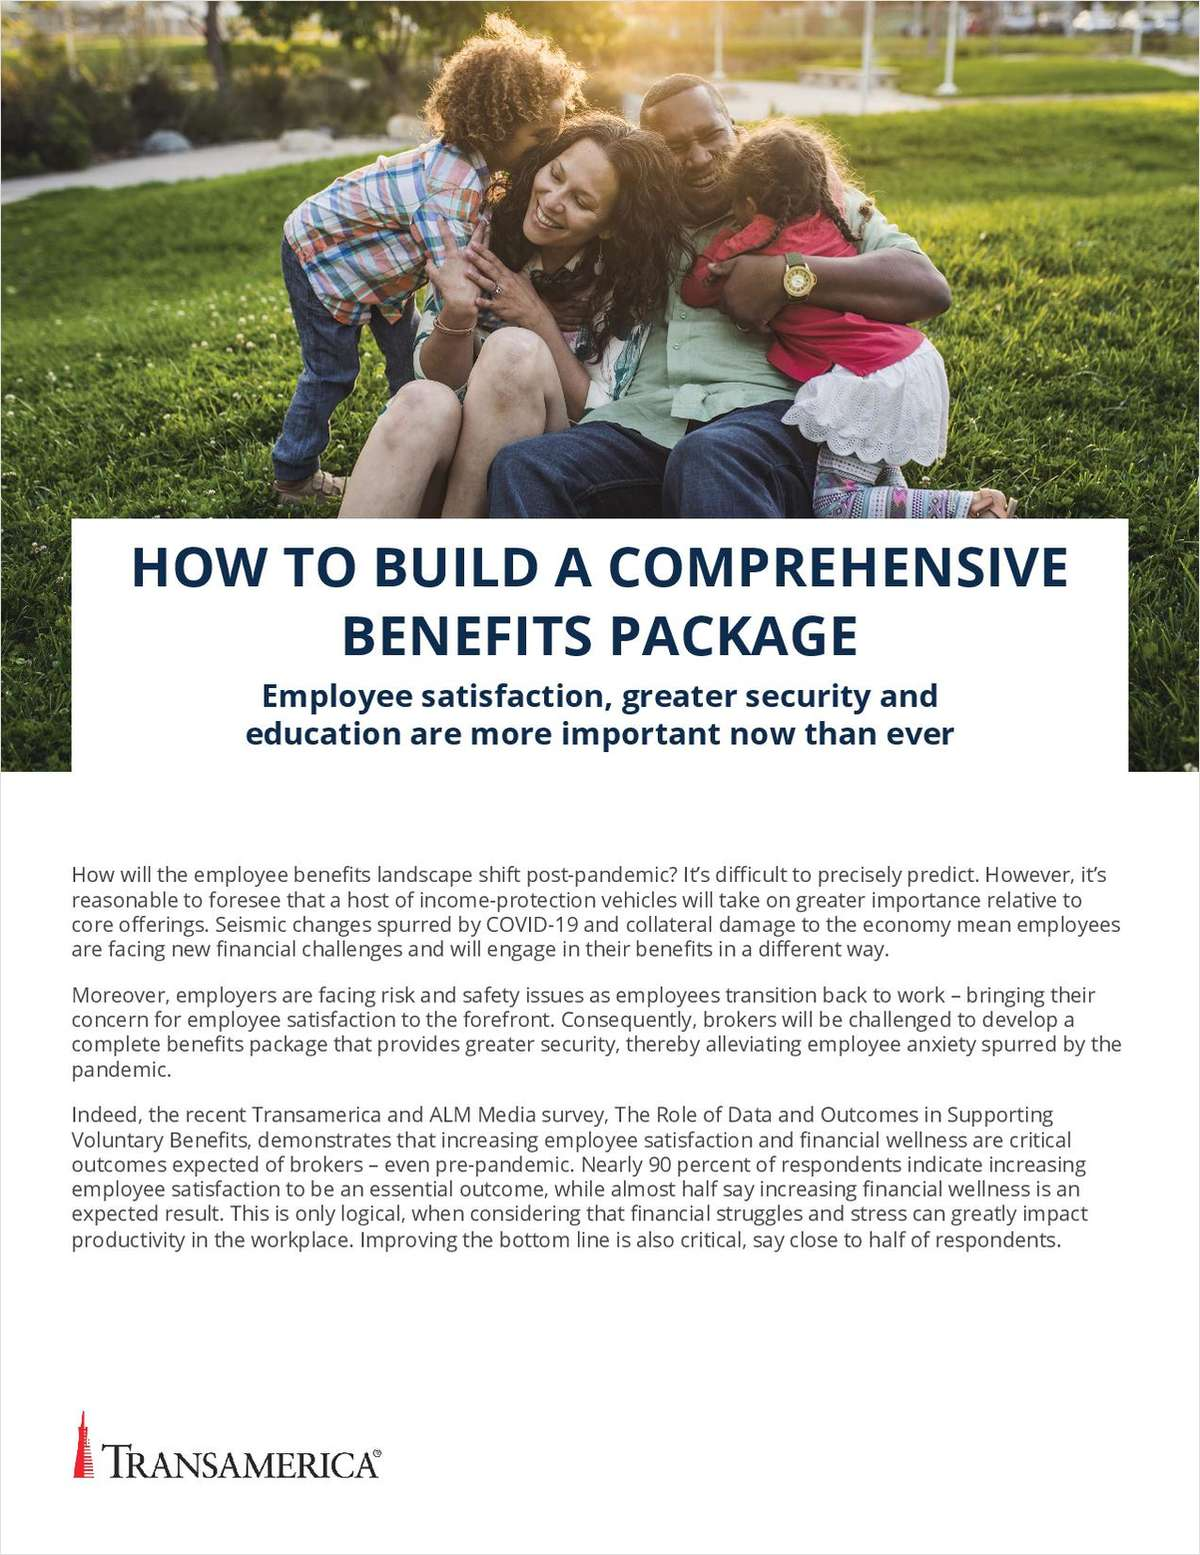 How to Build a Comprehensive Benefits Package